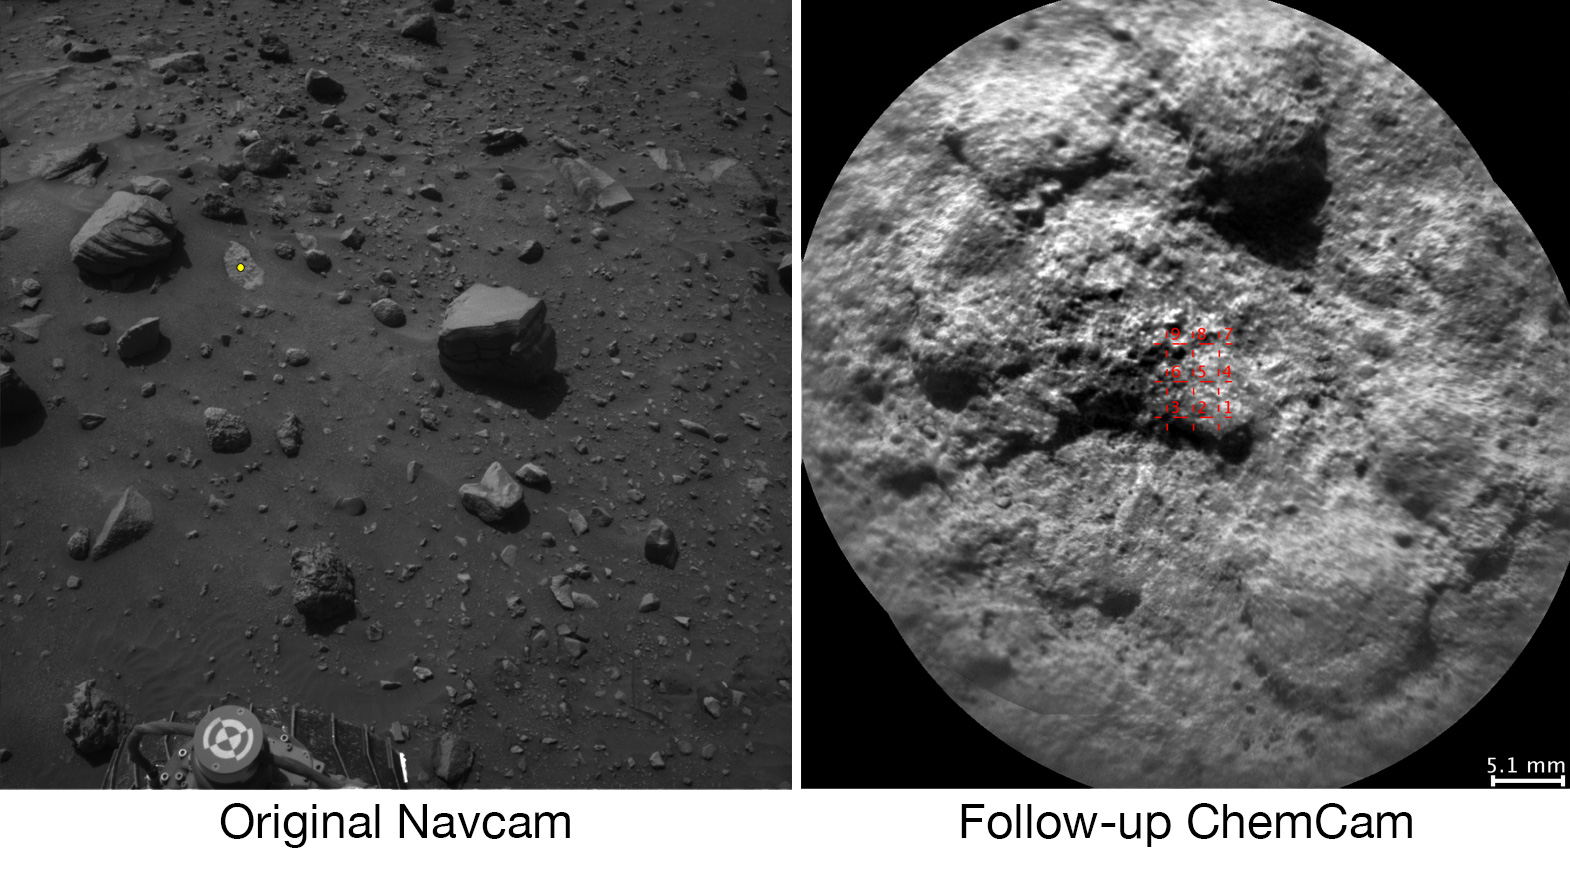 Il rover Curiosity Curiosità Mars rover seleziona autonomamente alcuni obiettivi per il laser e telescopica fotocamera del suo strumento ChemCam. Ad esempio, a bordo il software analizza l'immagine NavCam a sinistra, ha scelto l'obiettivo indicato con un punto giallo, e indicò ChemCam per i colpi laser e l'immagine a destra. NASA's Curiosity Mars rover autonomously selects some targets for the laser and telescopic camera of its ChemCam instrument. For example, on-board software analyzed the Navcam image at left, chose the target indicated with a yellow dot, and pointed ChemCam for laser shots and the image at right. Crediti: NASA/JPL-Caltech/LANL/CNES/IRAP/LPGNantes/CNRS/IAS